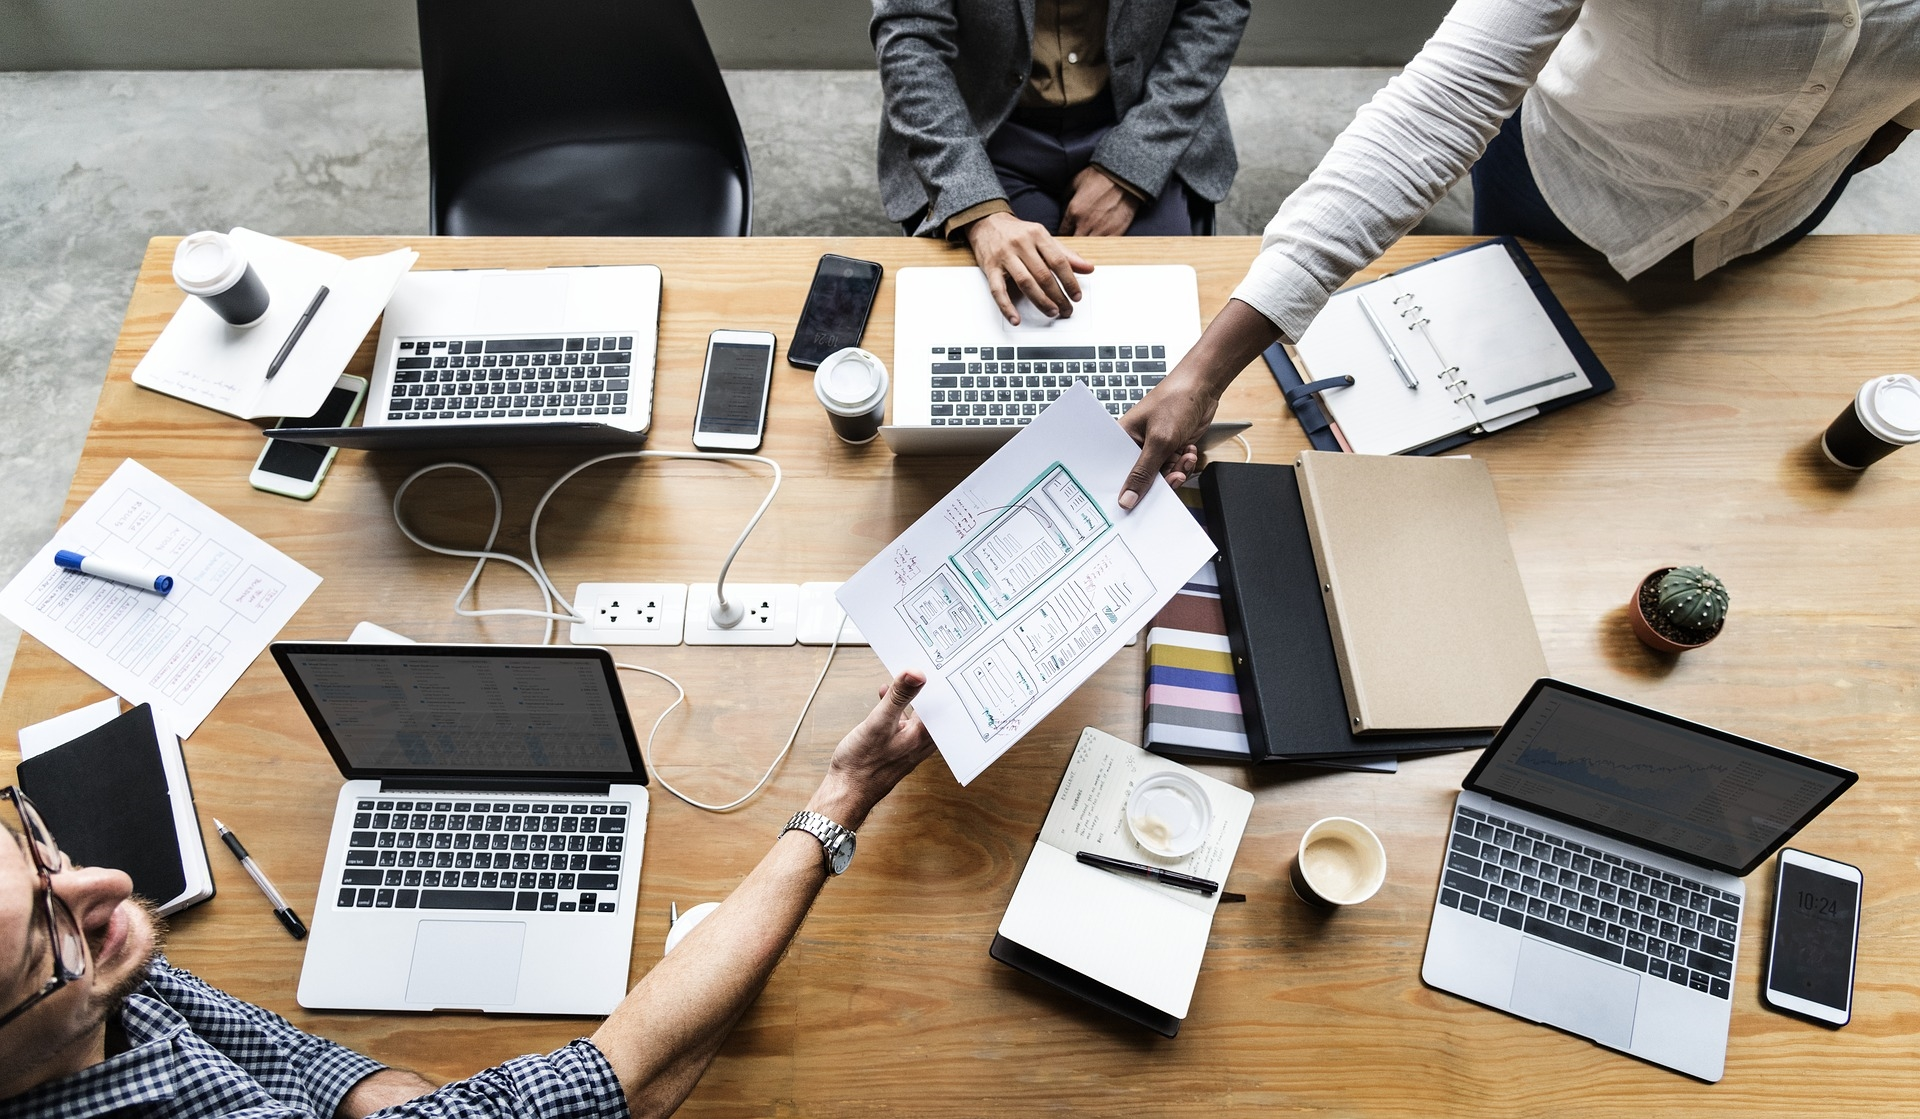 What makes an Effective Meeting Agenda